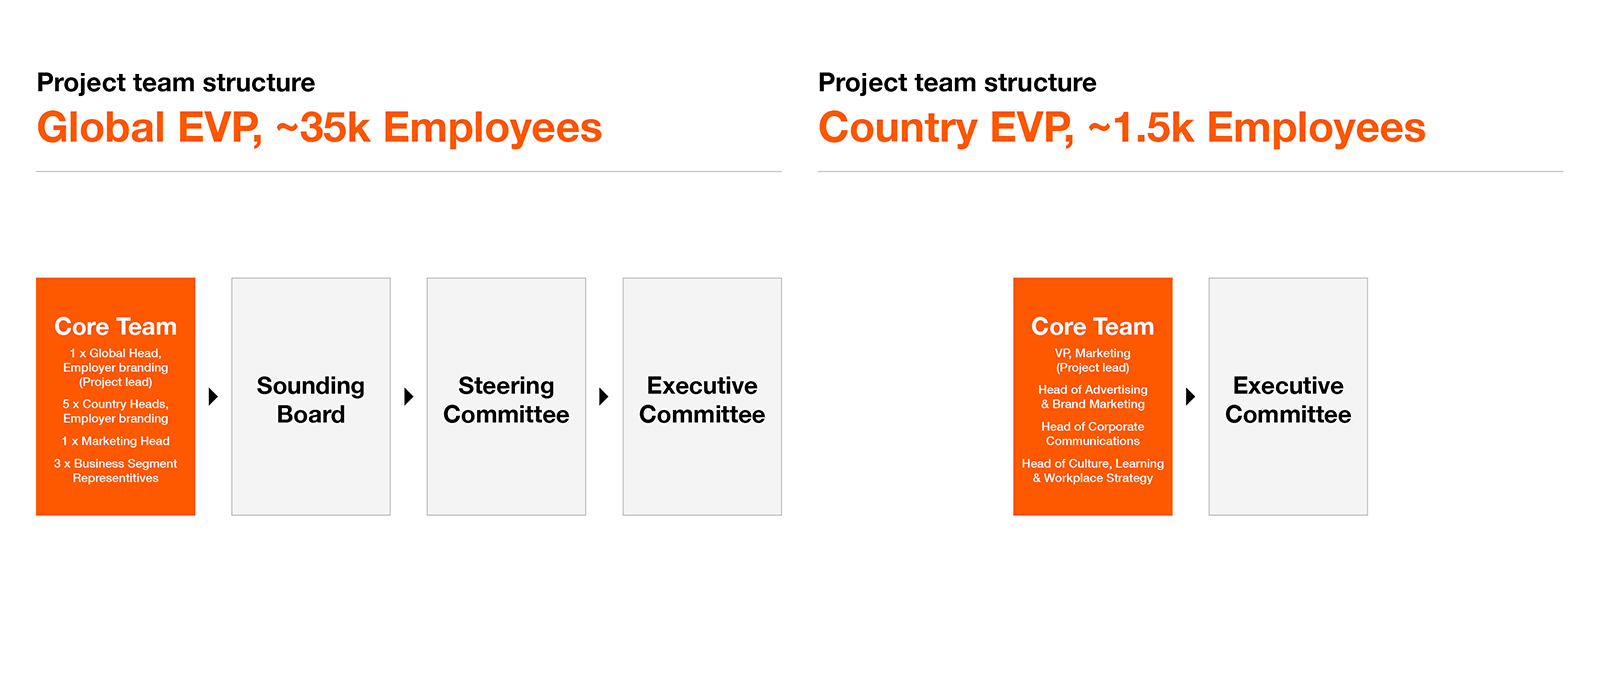 Example client project team structures based on two recent Maximum projects